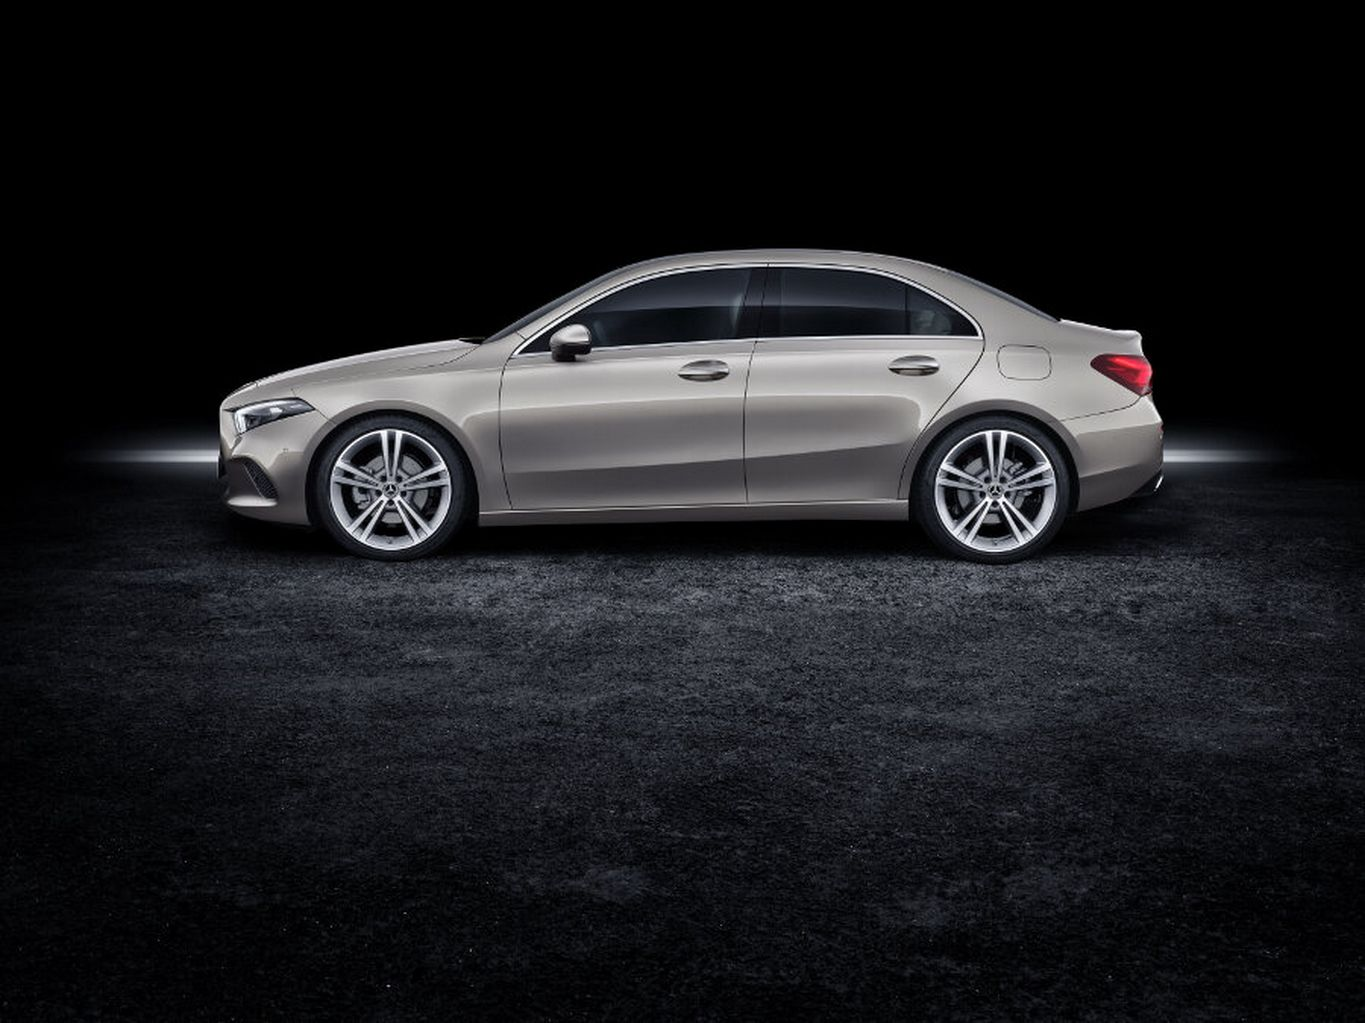 Mercedes-Benz Classe A Sedan